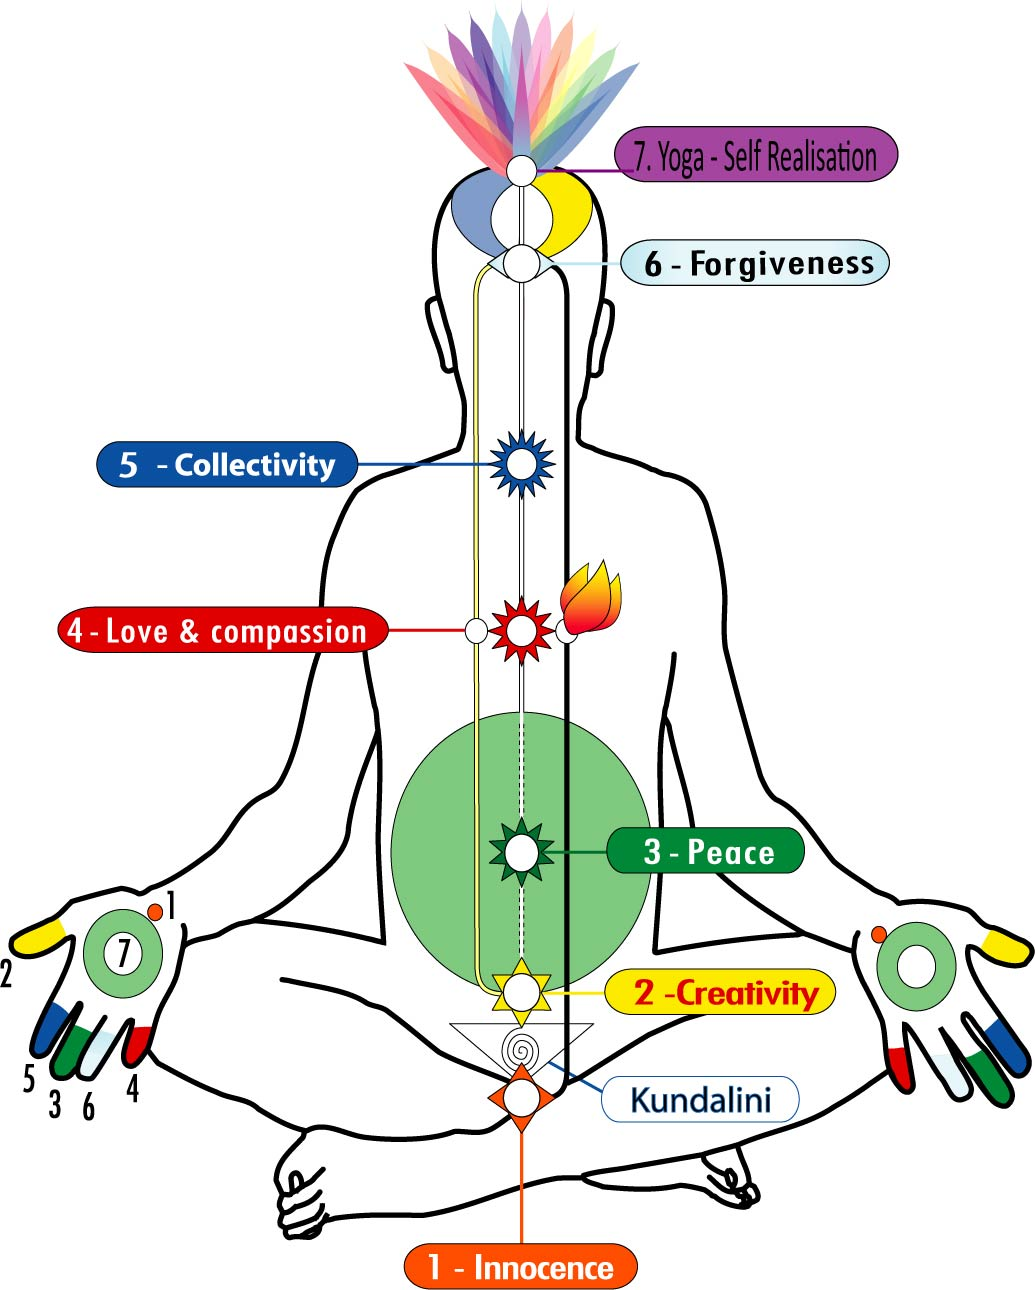 The 7 Chakras, Kundalini energy & 3 channels